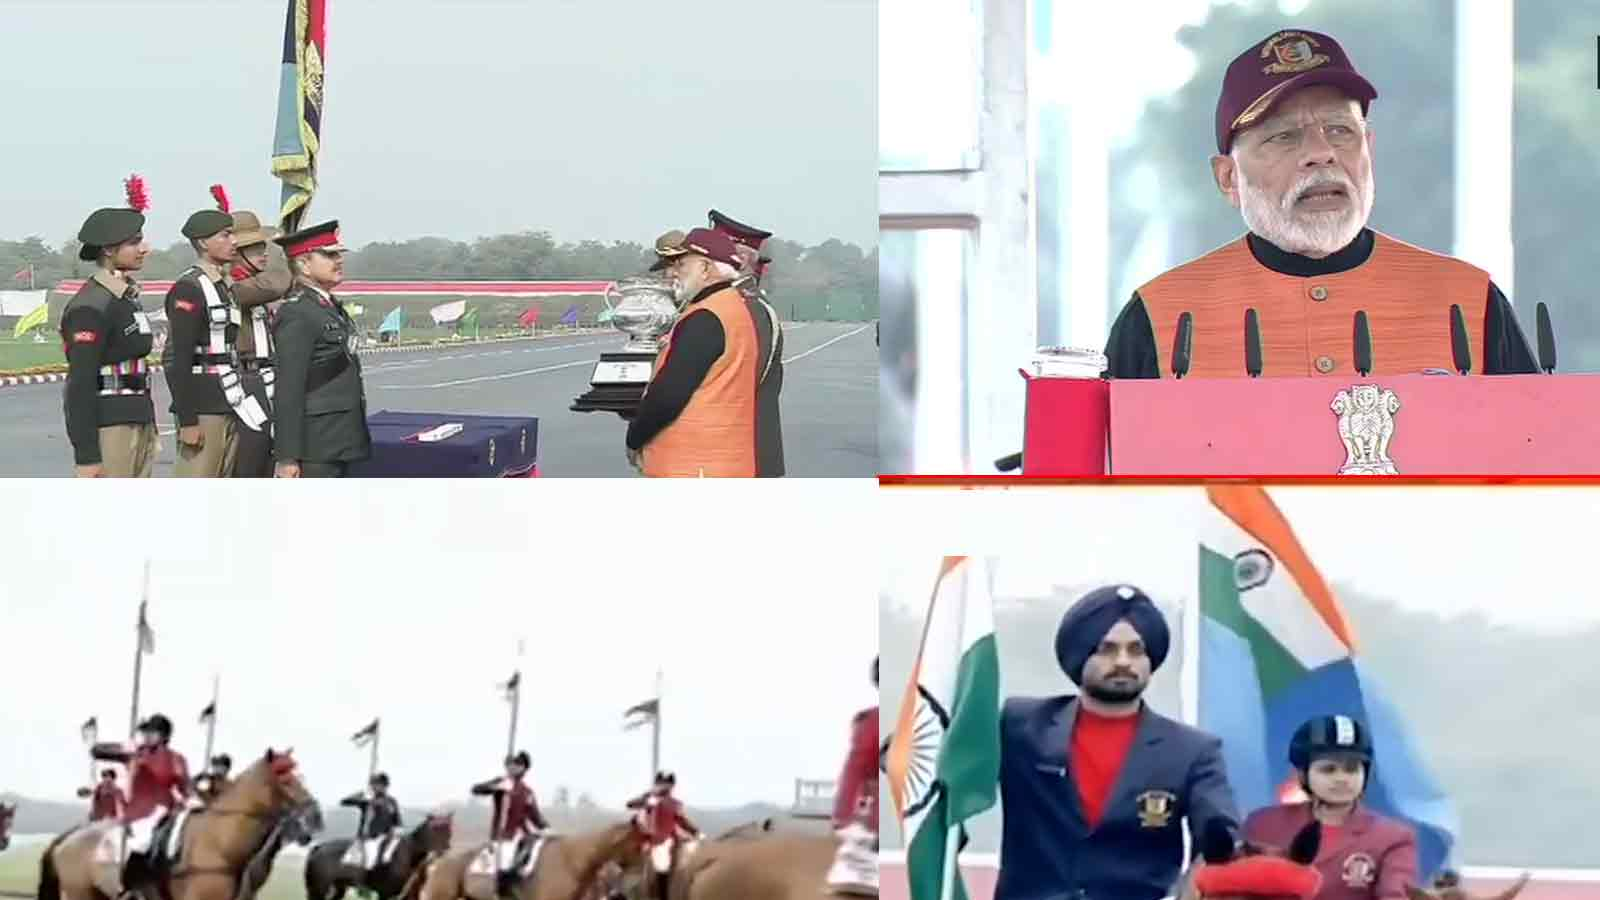 pm-narendra-modi-attends-national-cadet-corps-rally-2020